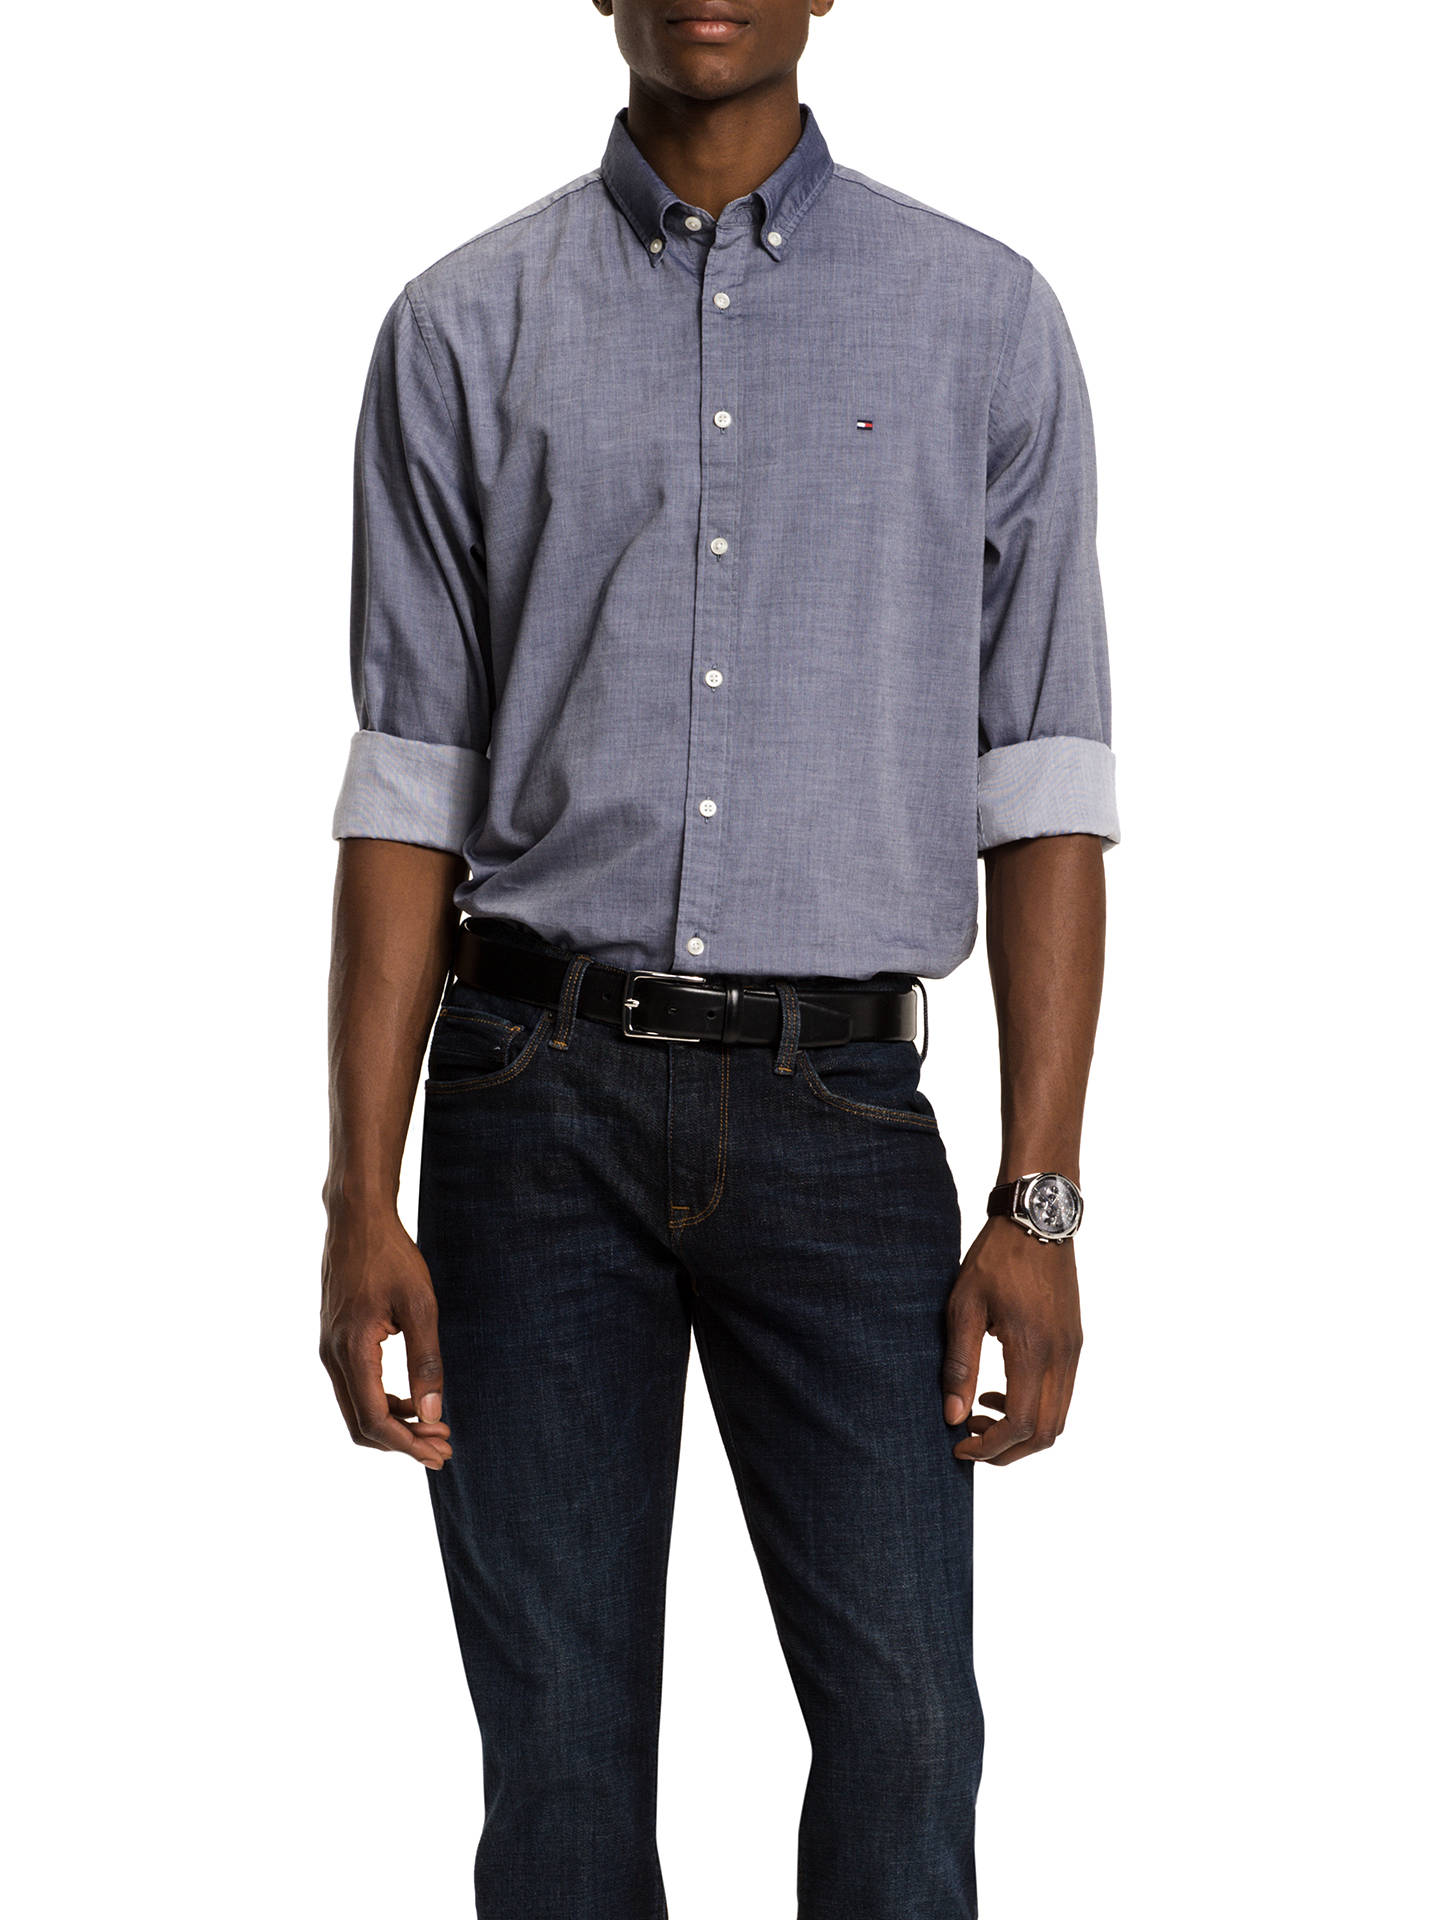 ed57f5f5 Buy Tommy Hilfiger Two Tone Dobby Shirt, Navy, S Online at johnlewis.com ...